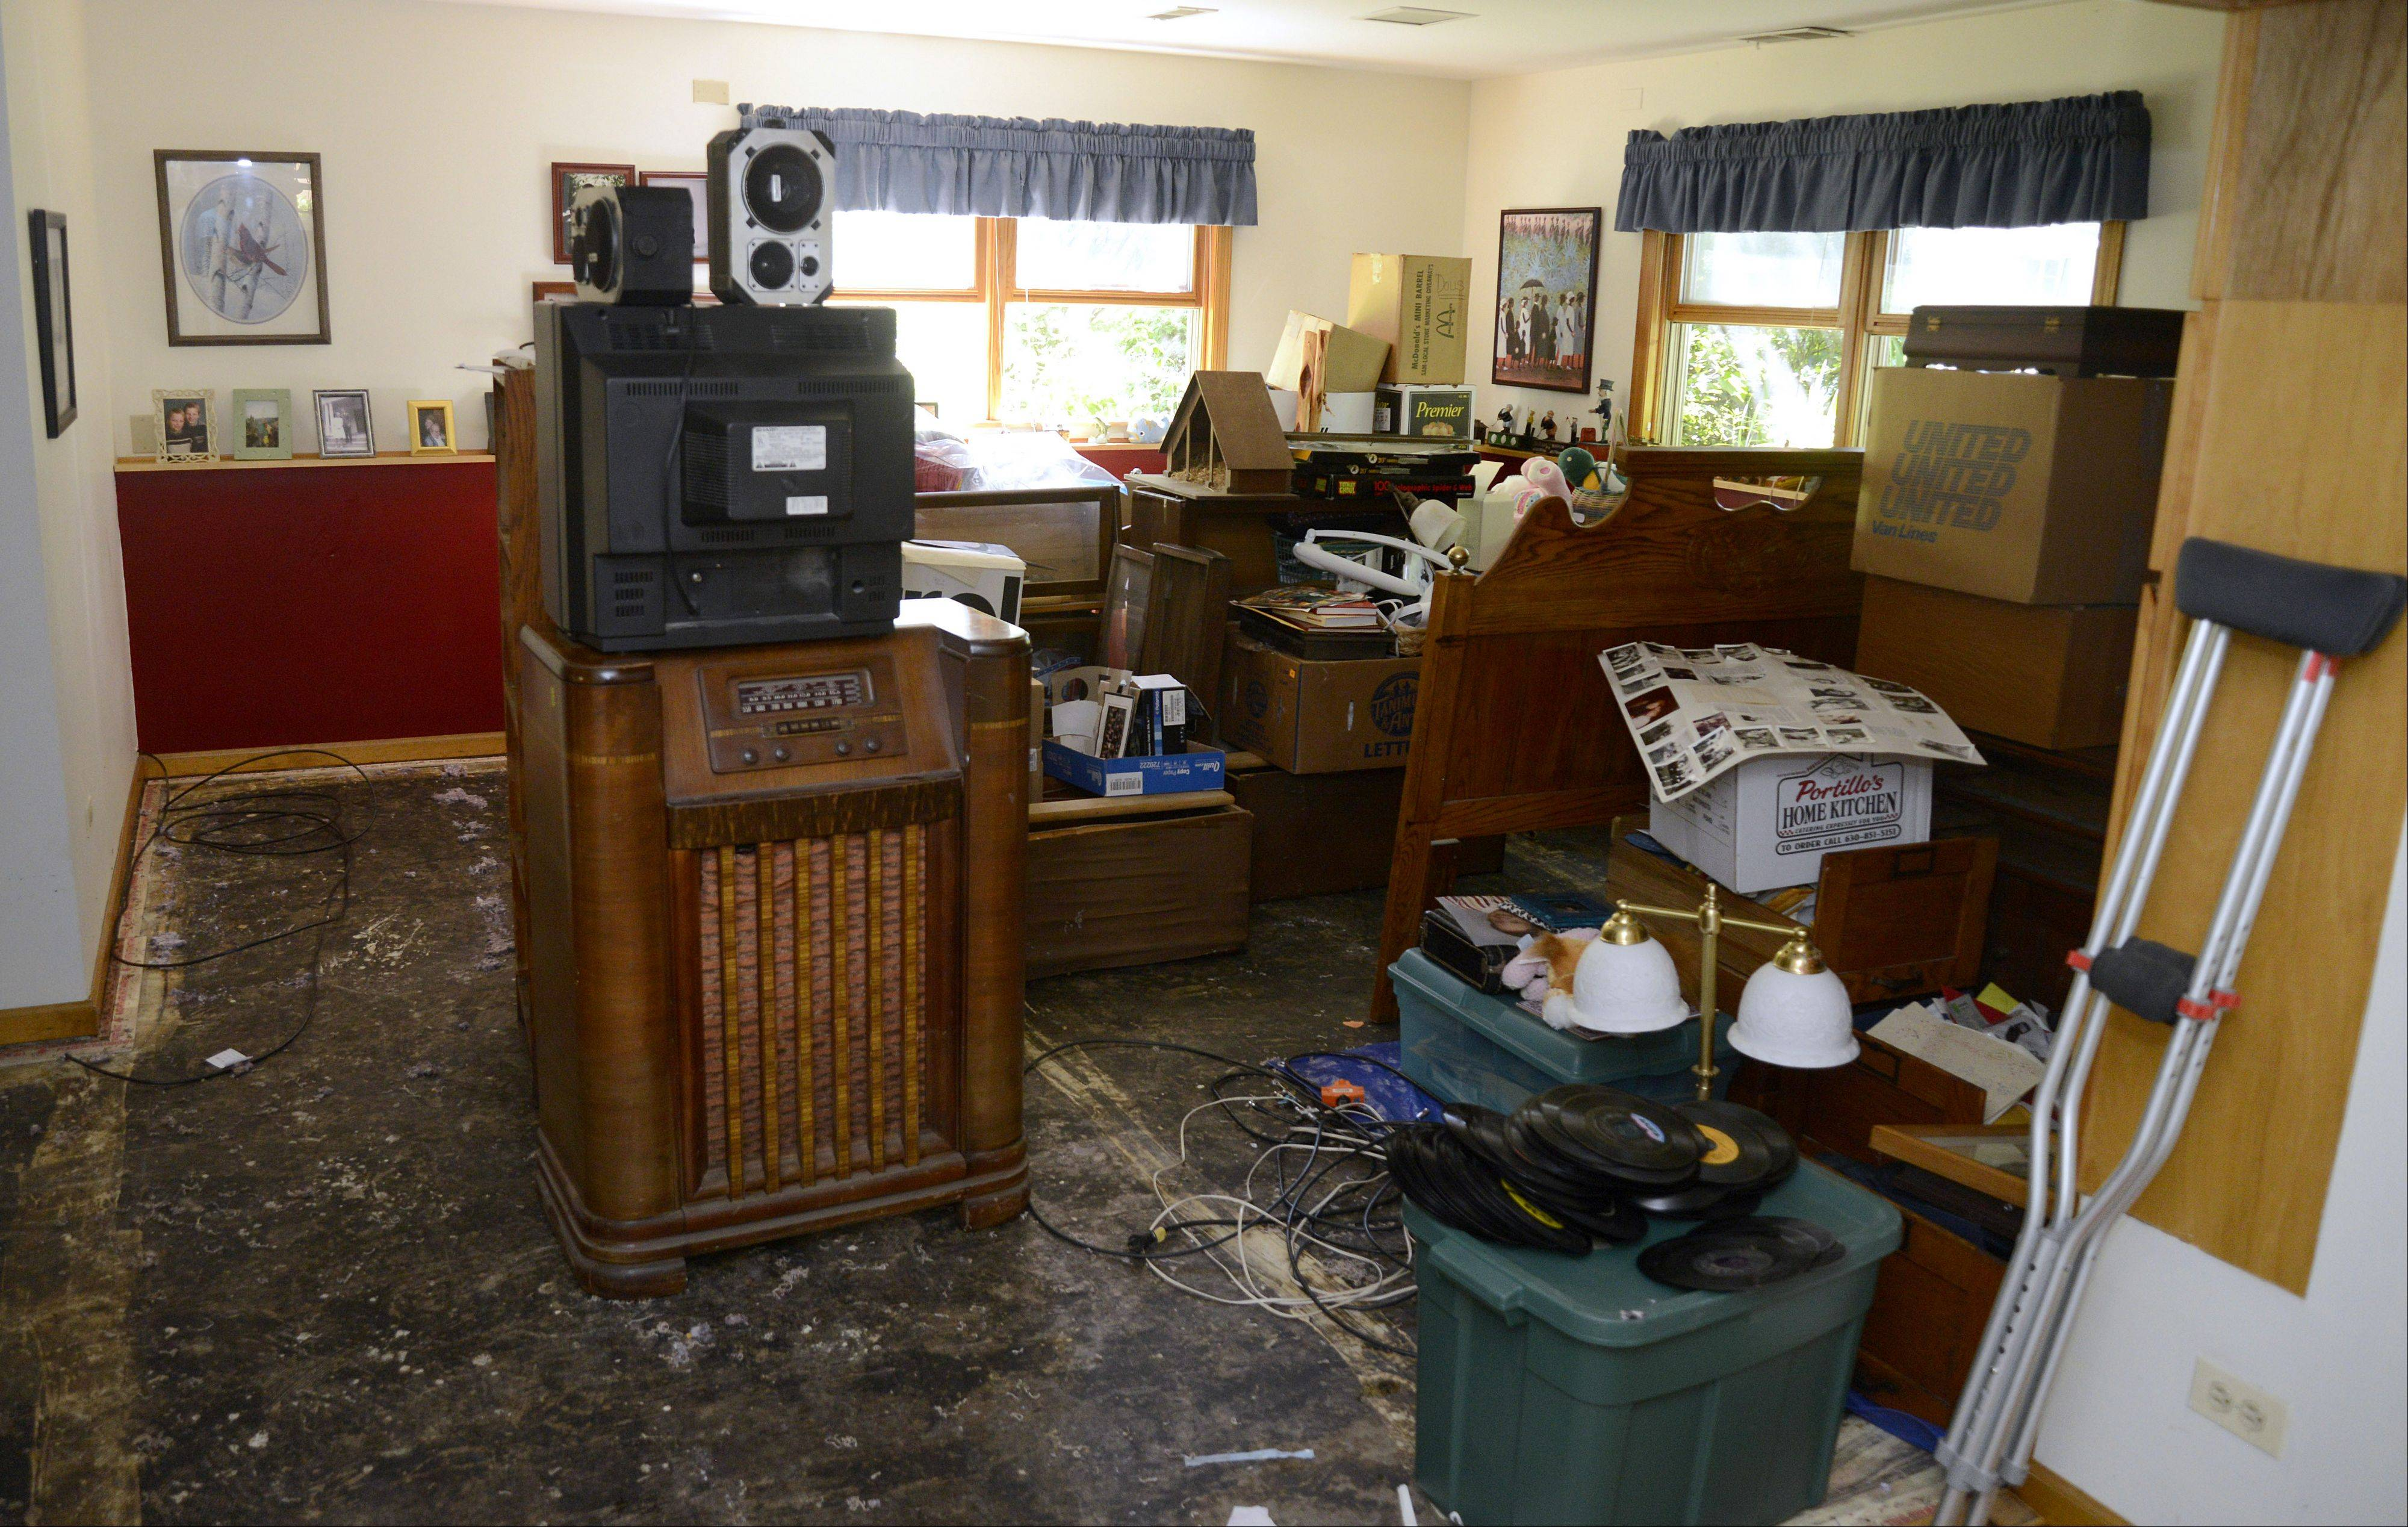 These items inside the Cary home of Kathi and Steven Riley show the extent of flood damage that left sewer water in their basement. The couple, married for 33 years, lost their wedding photos and some of the antiques Steven collects.